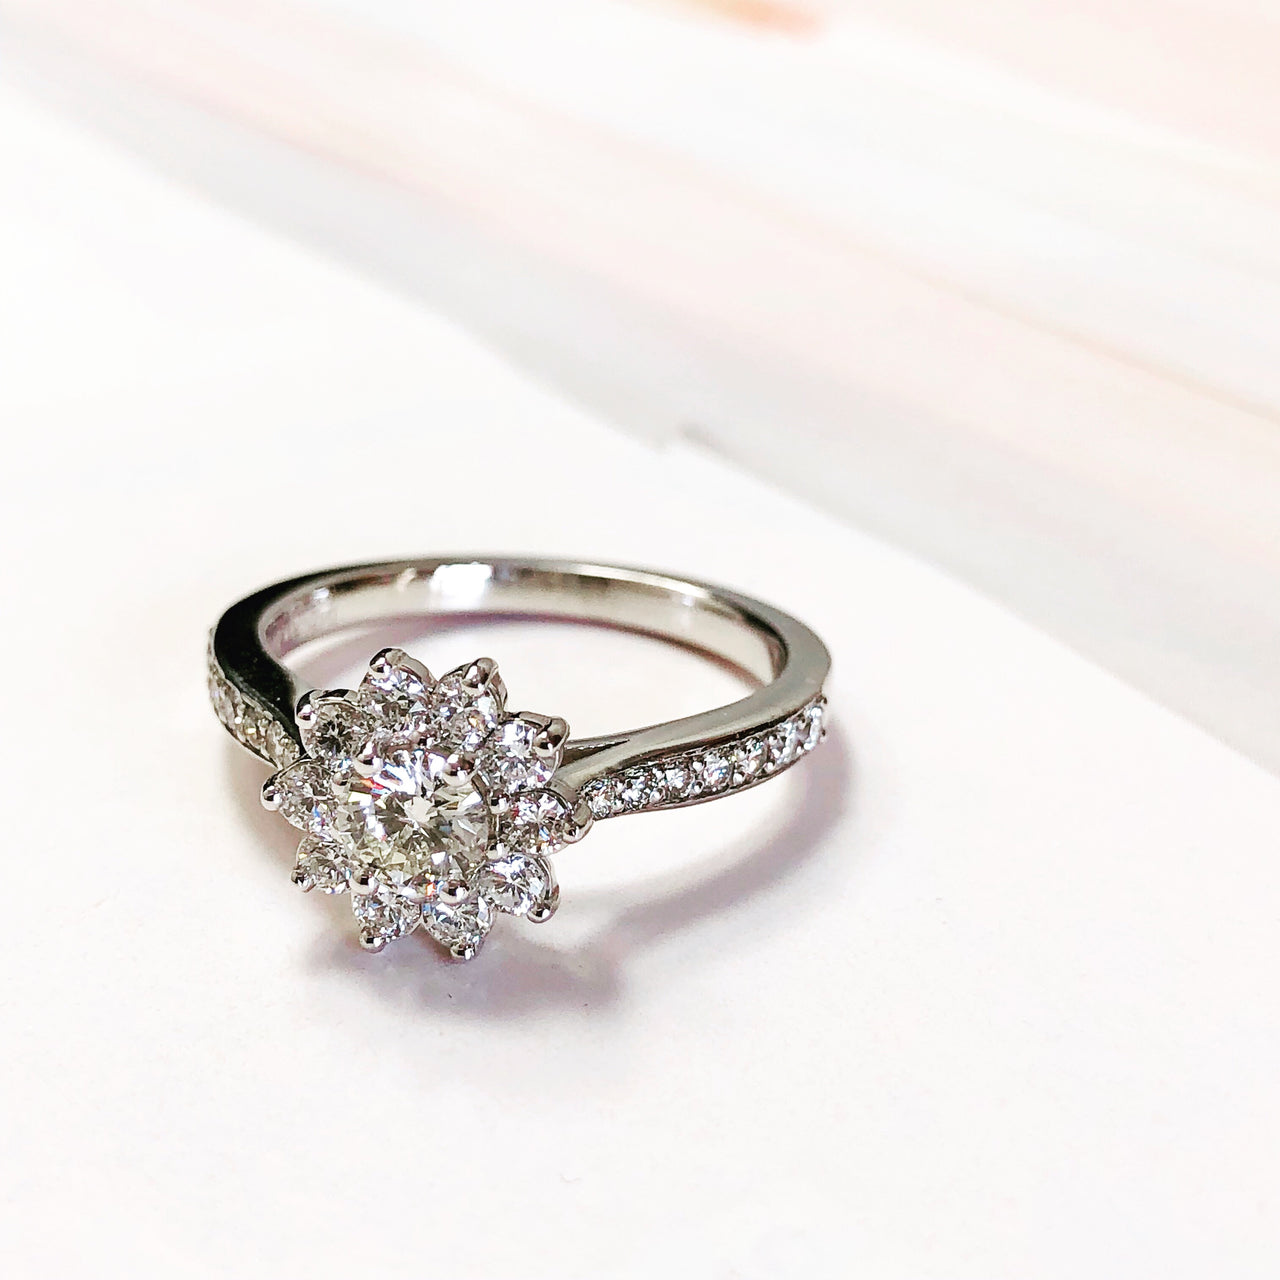 14K White Gold Cluster Diamond Ring.